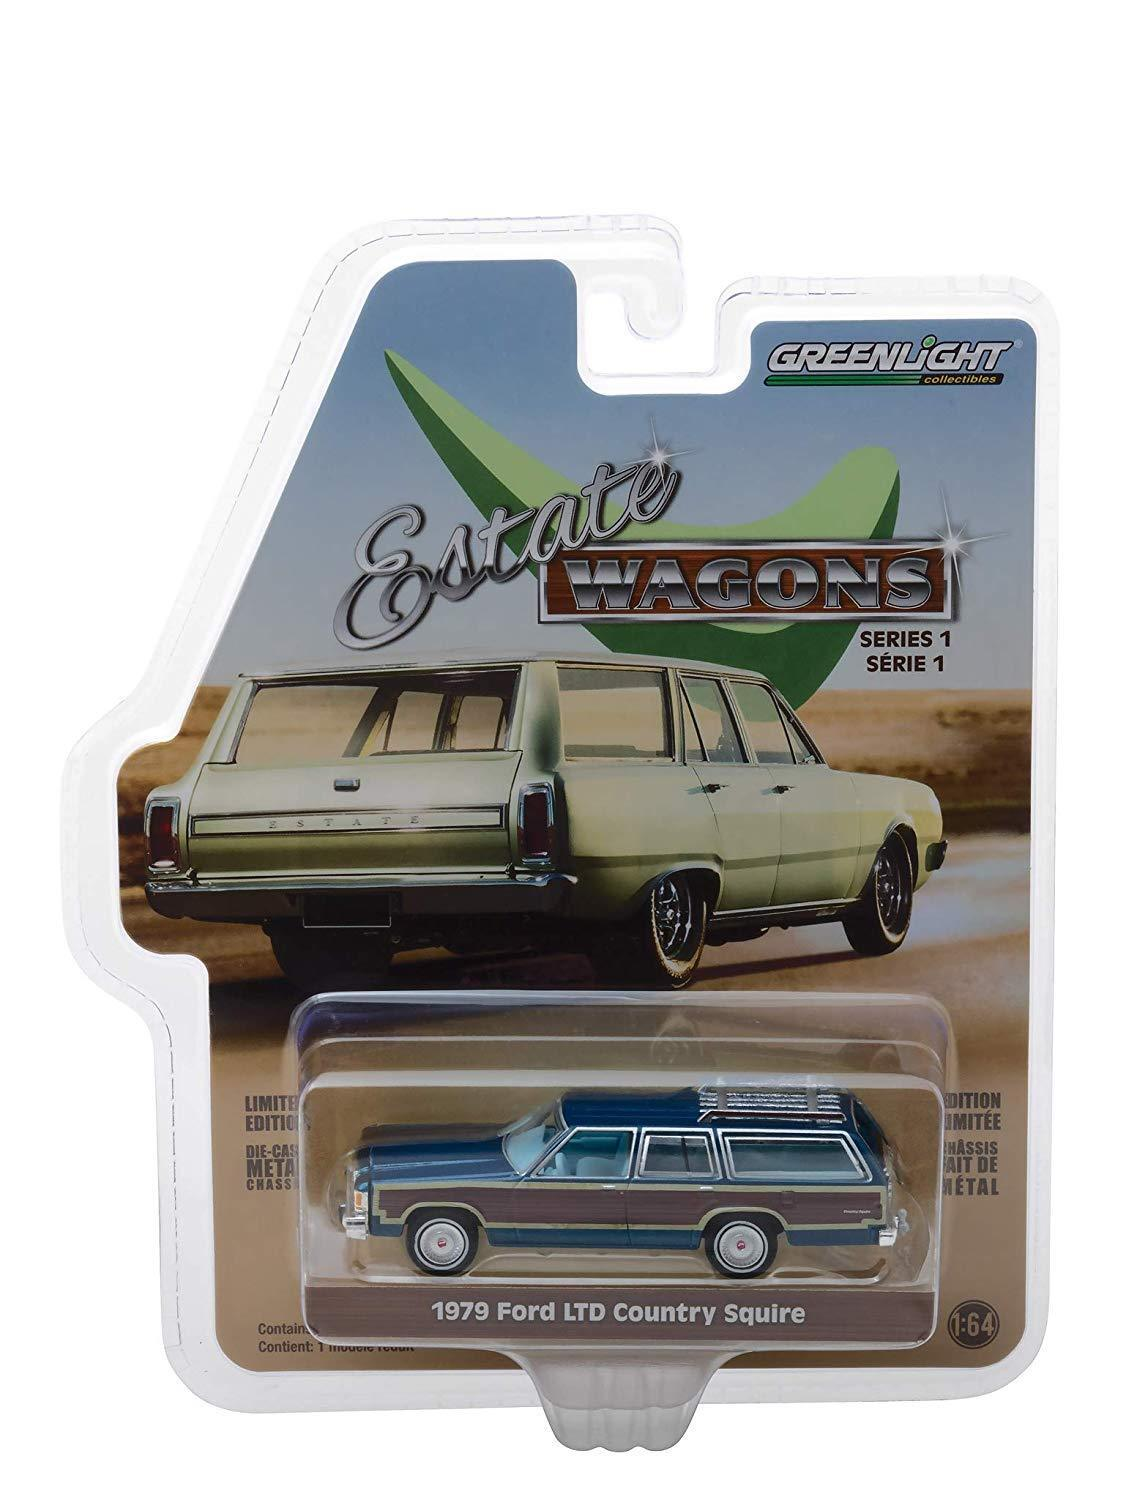 Greenlight 1/64 Estate Wagons S1 1979 Ford LTD Country Squir